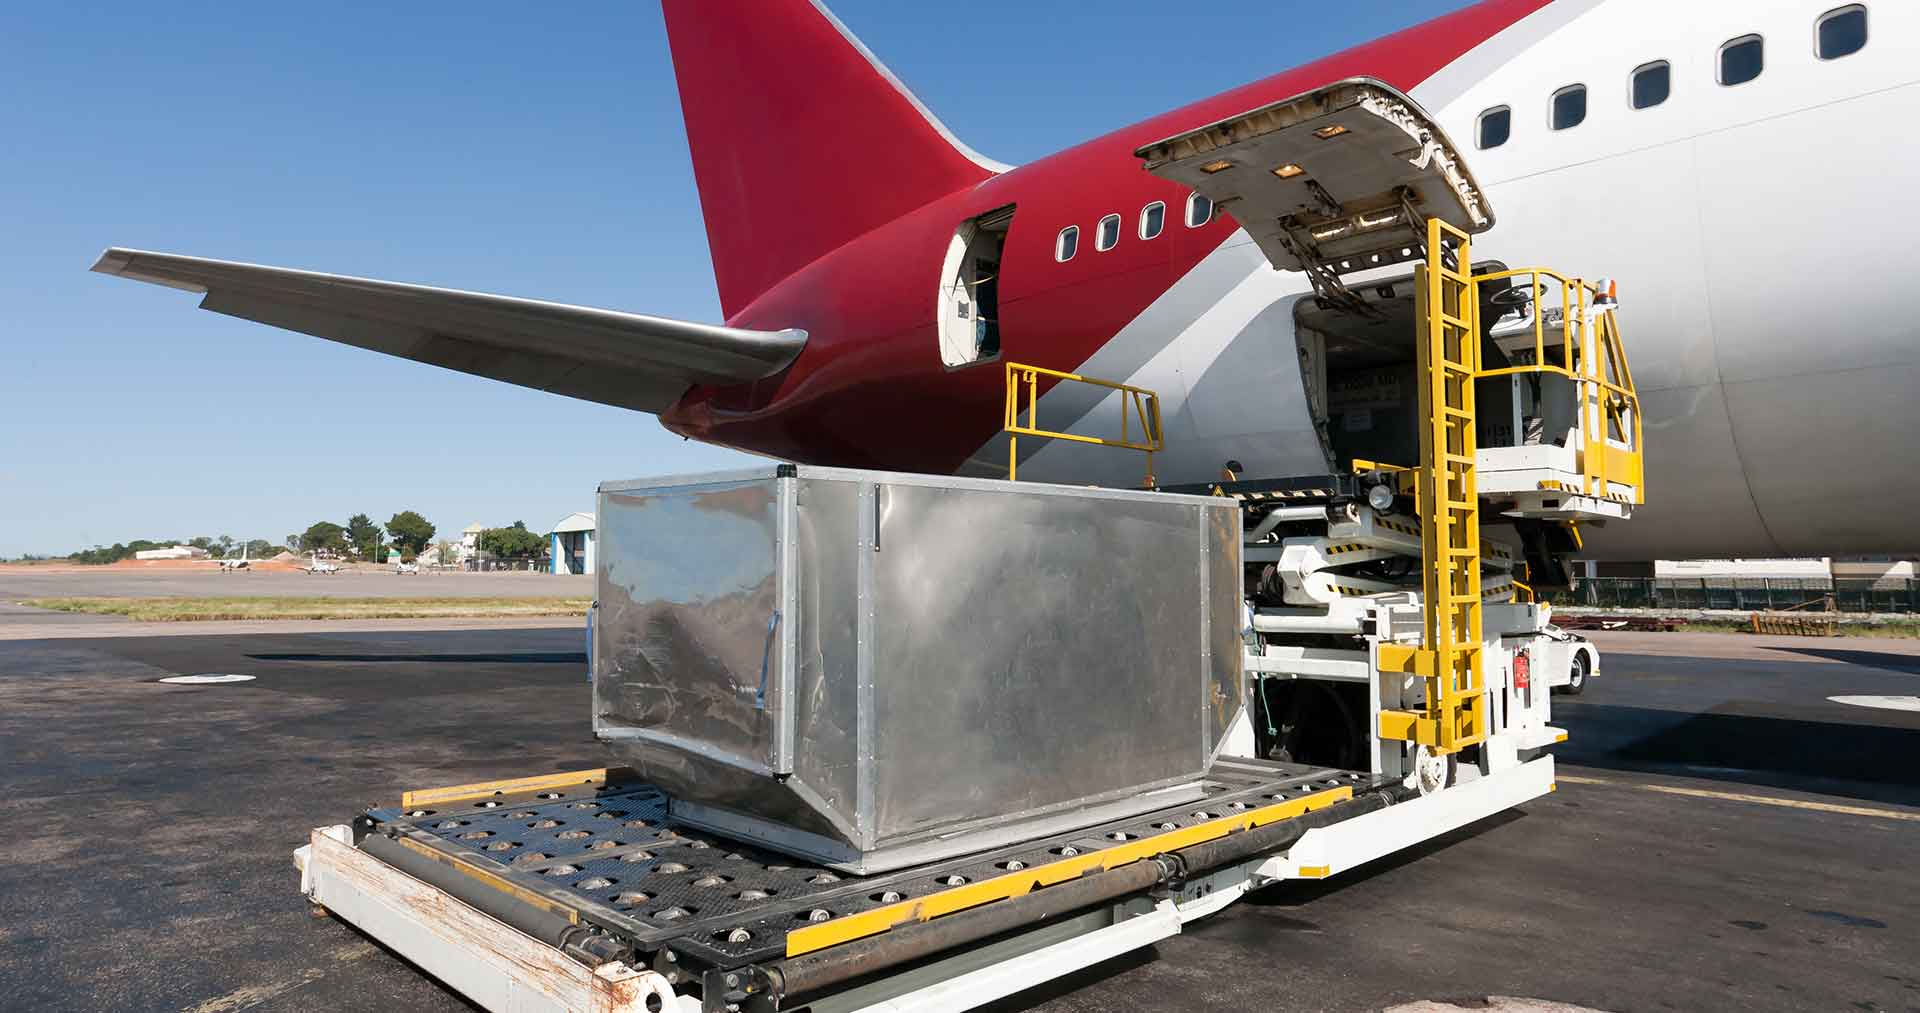 SHIPRO Air Freight